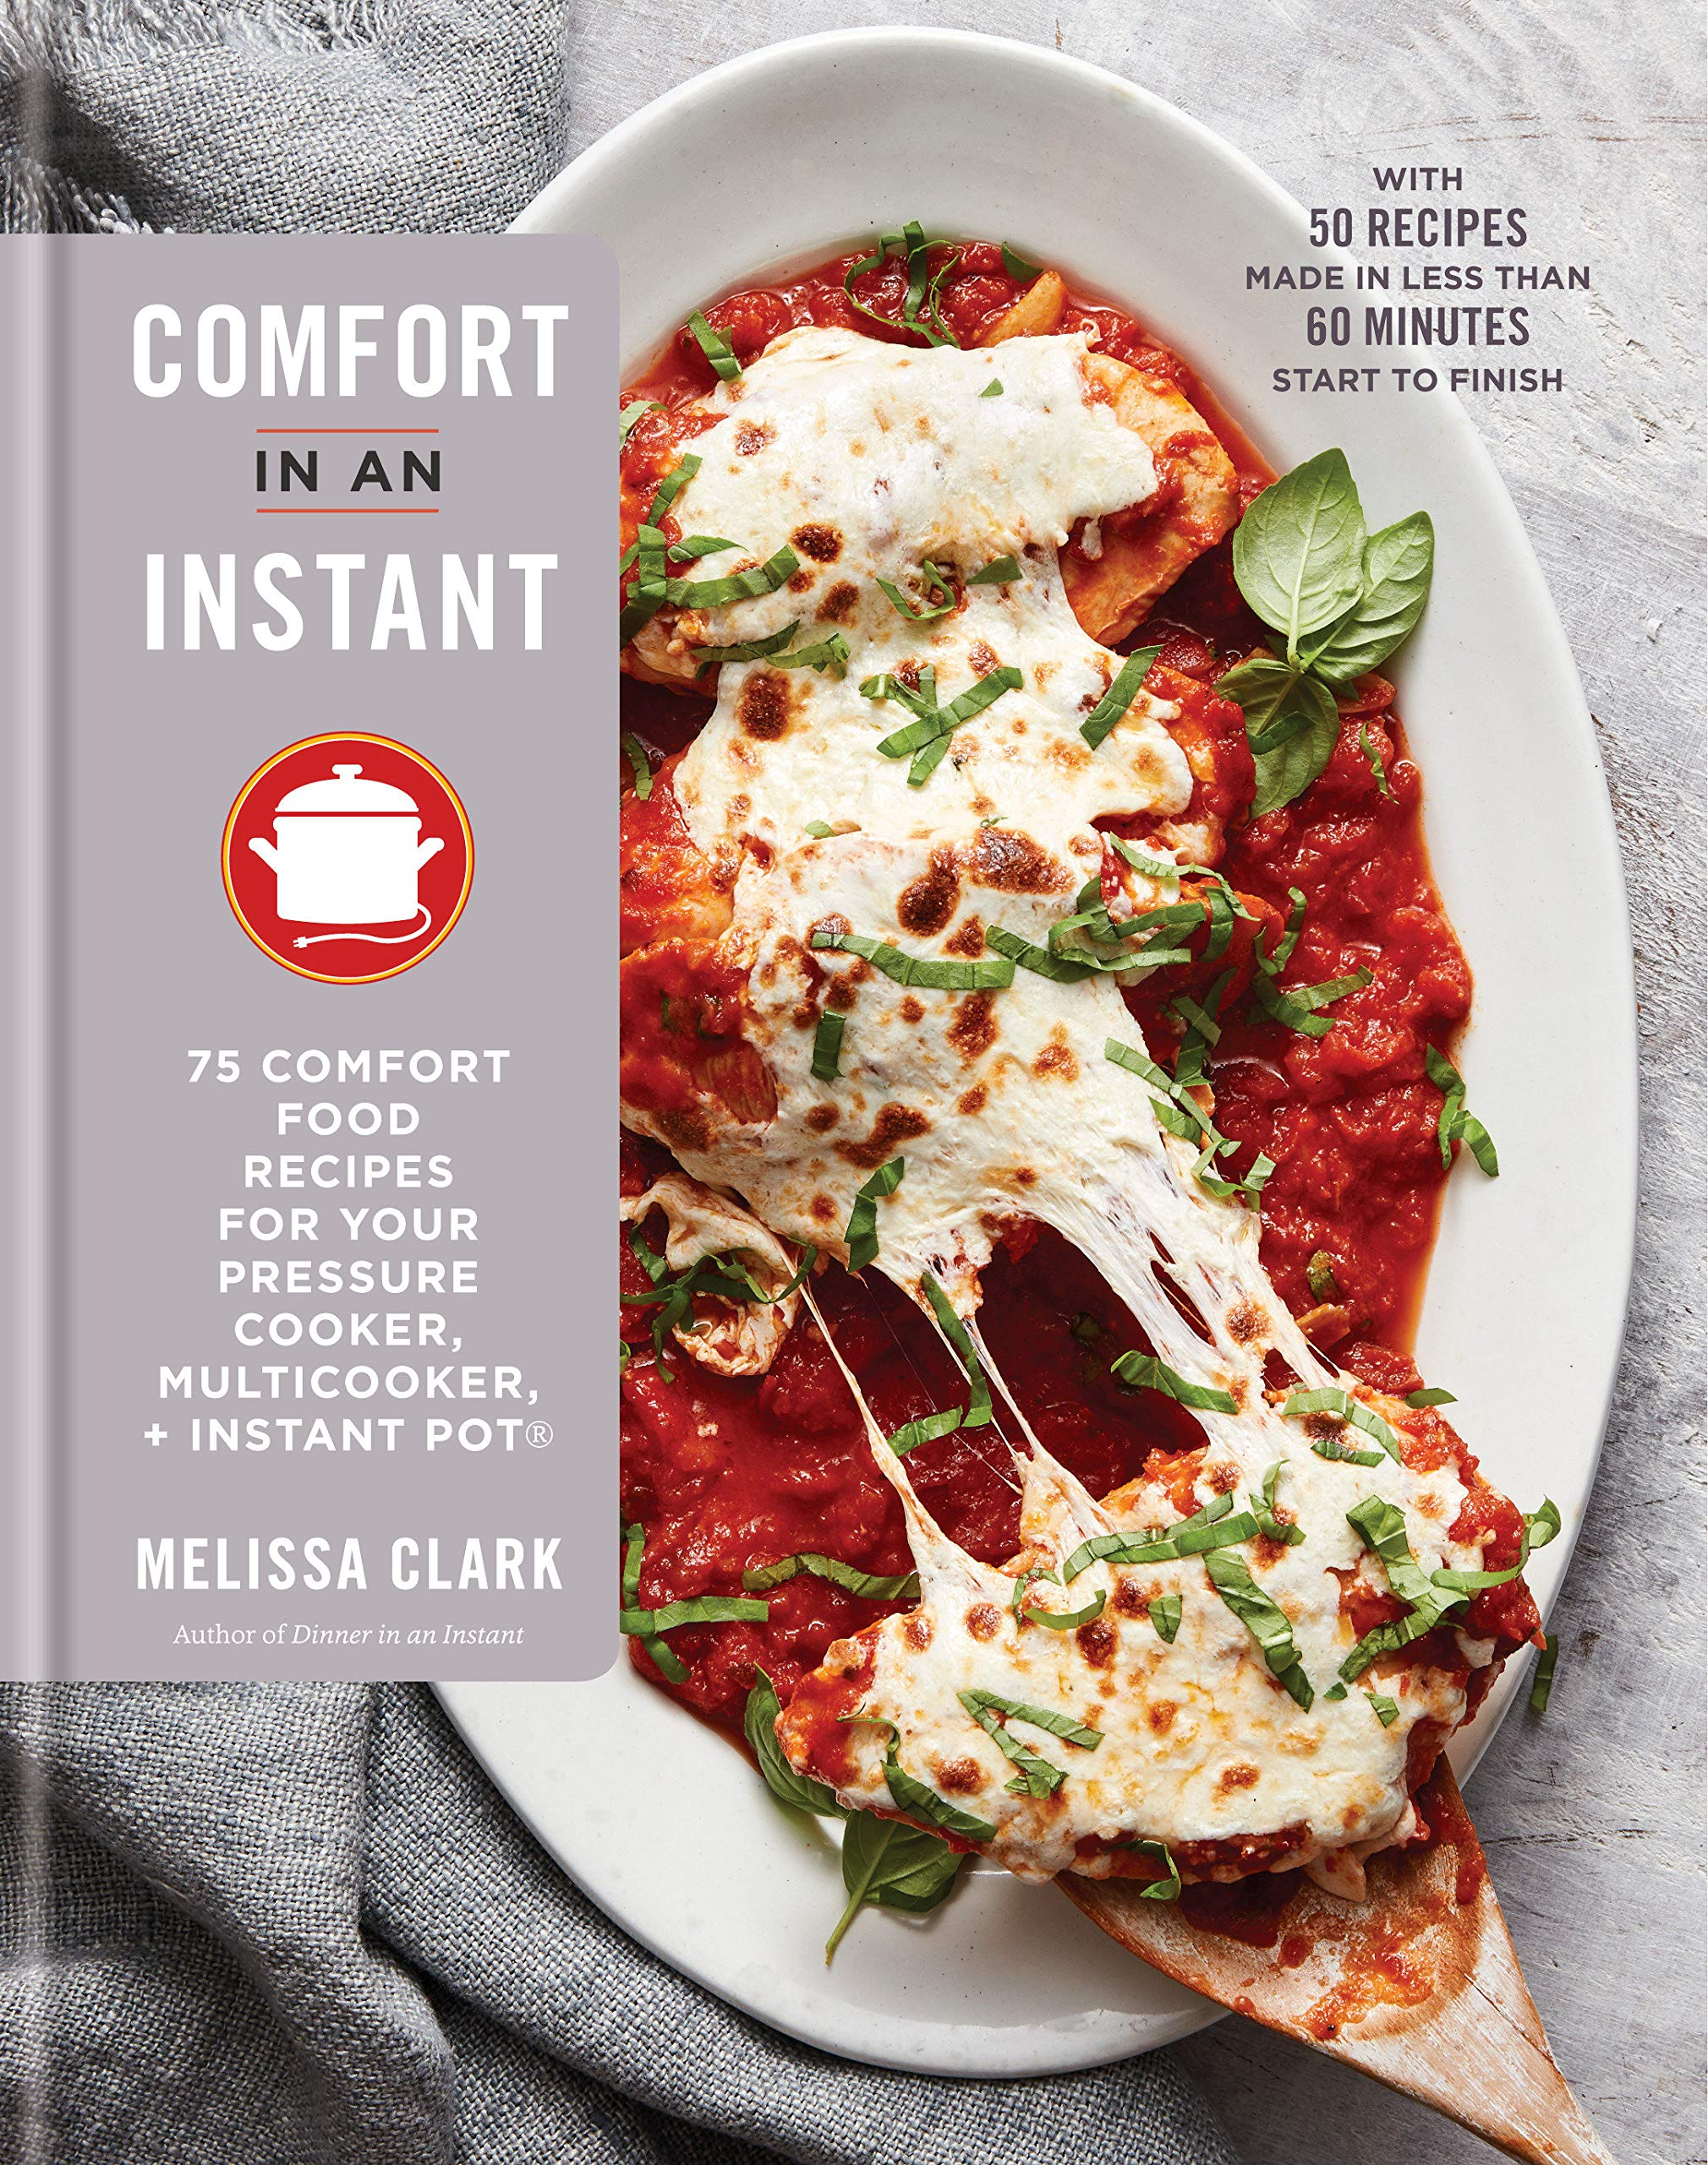 Our favorite Instant Pot cookbooks: Comfort In an Instant by Melissa Clark | featured on Didn't I Just Feed You podcast